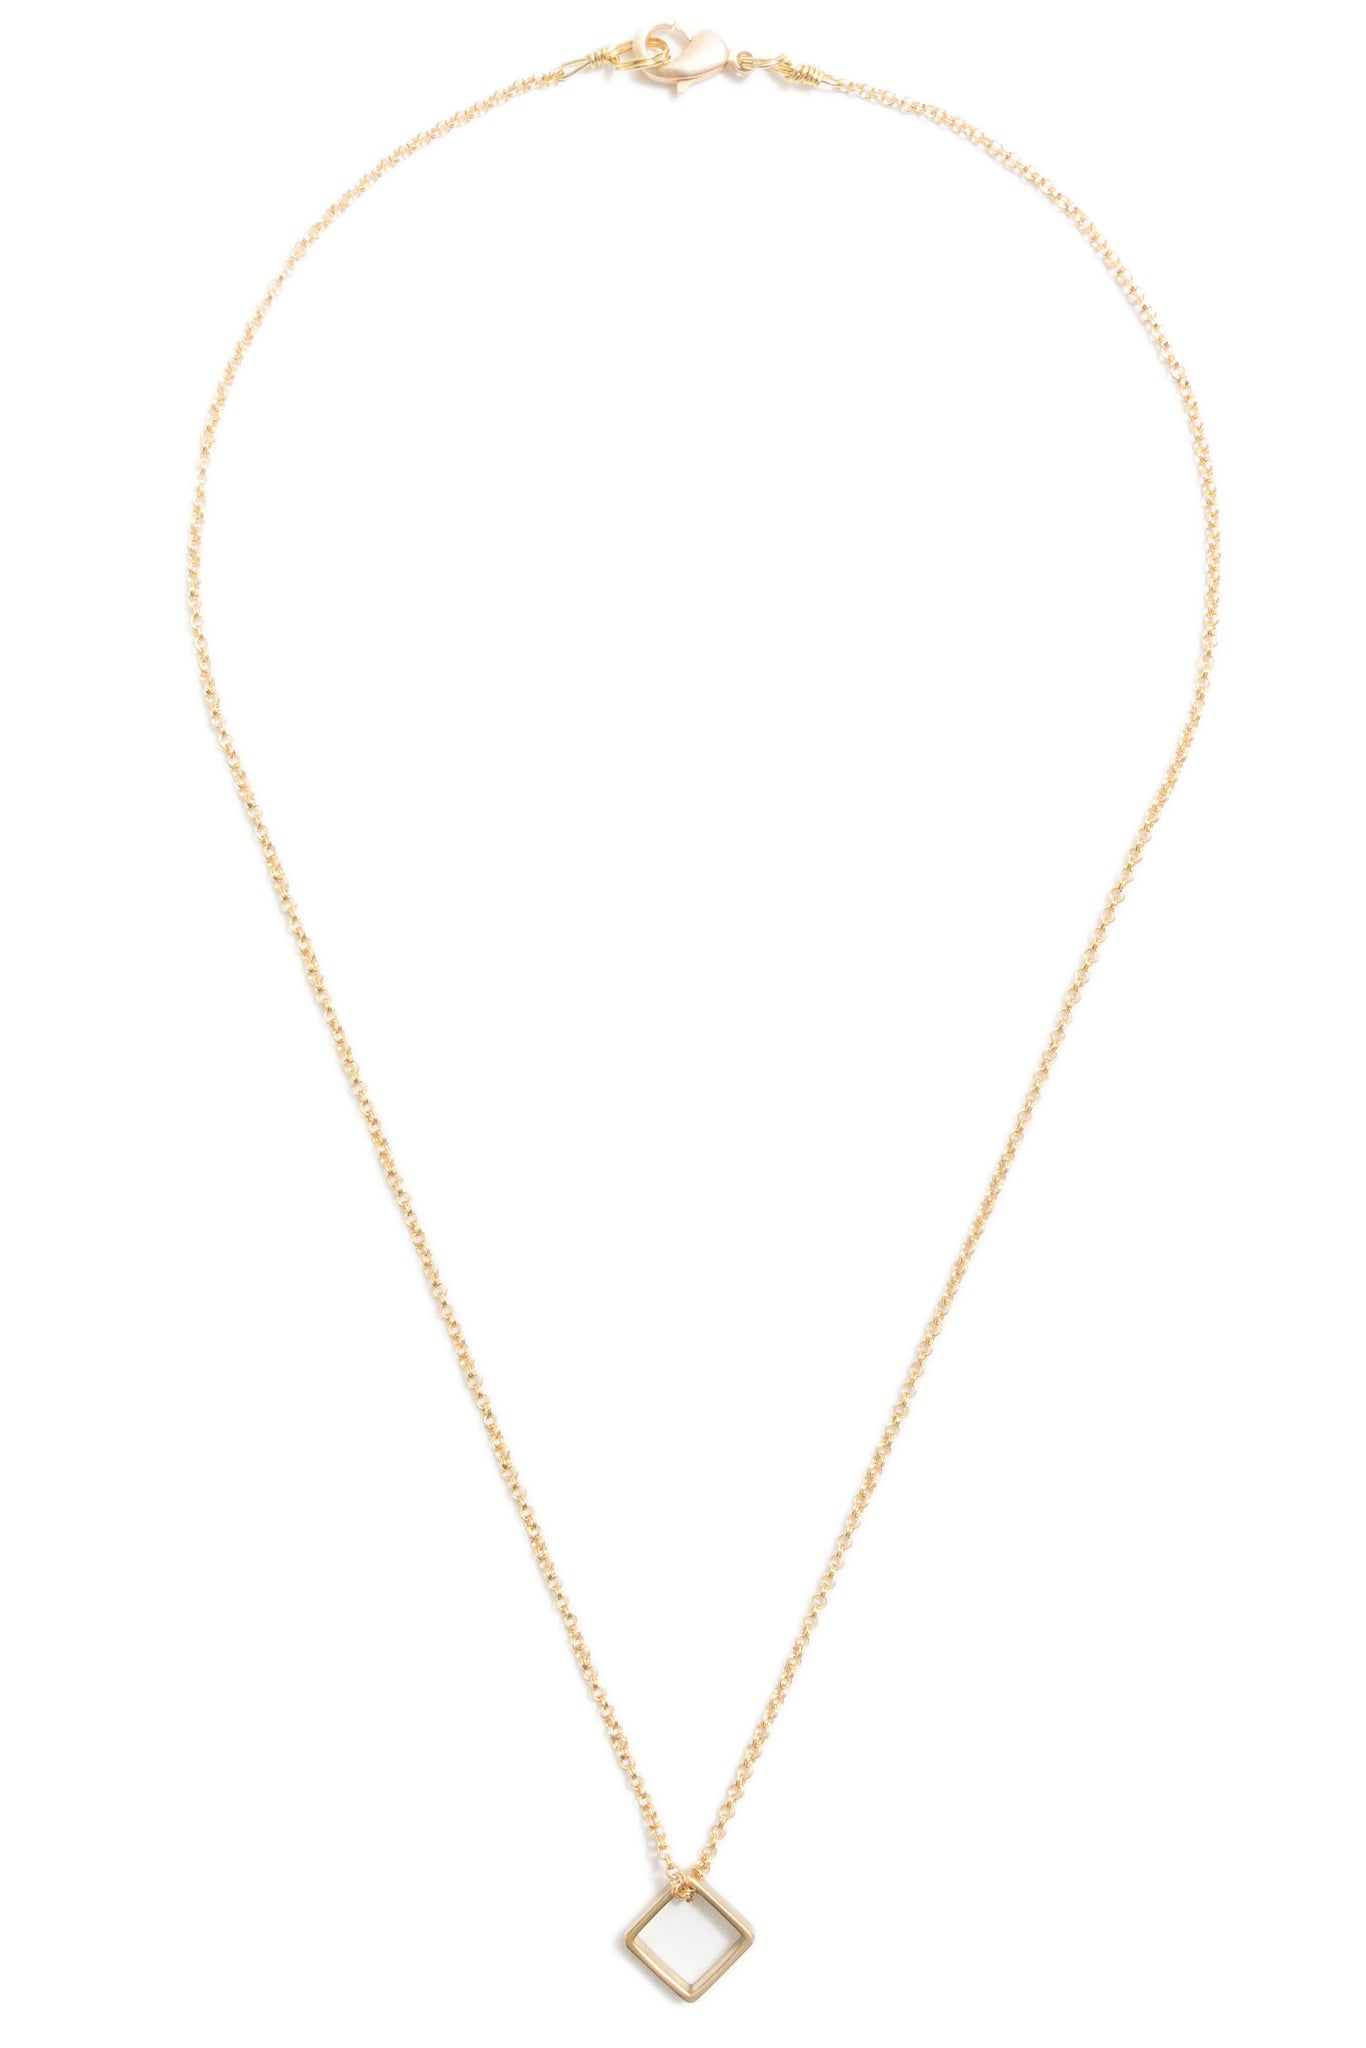 Small Brass Square Necklace on Gold Chain